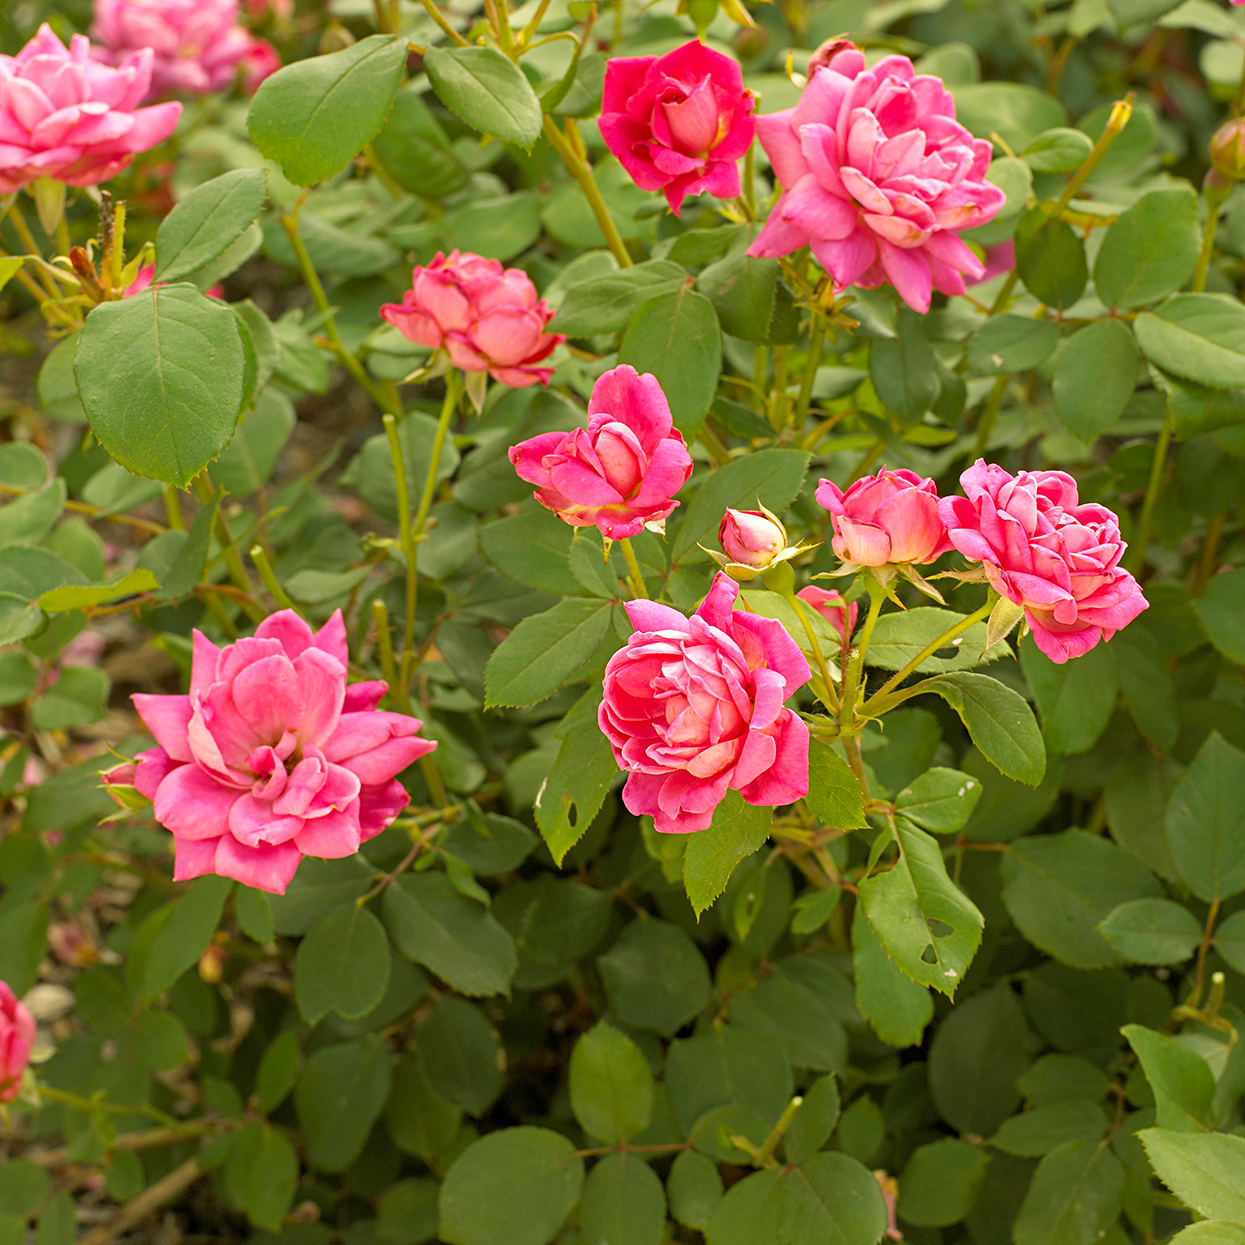 pink double knock-out rose bush